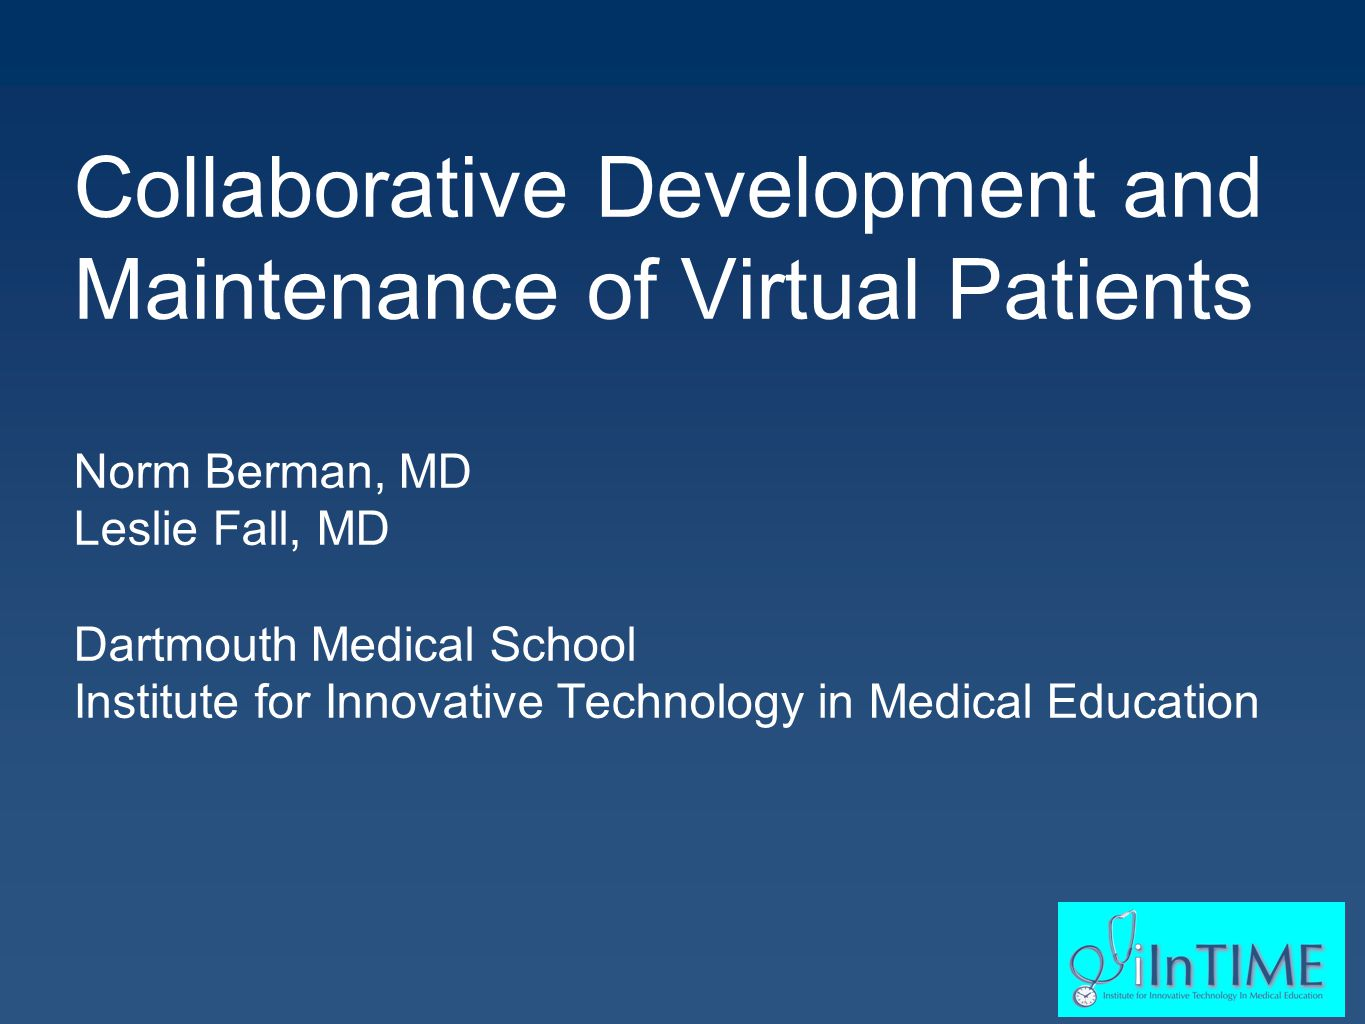 What is needed for successful  development  broad adoption  maintenance of virtual patients?